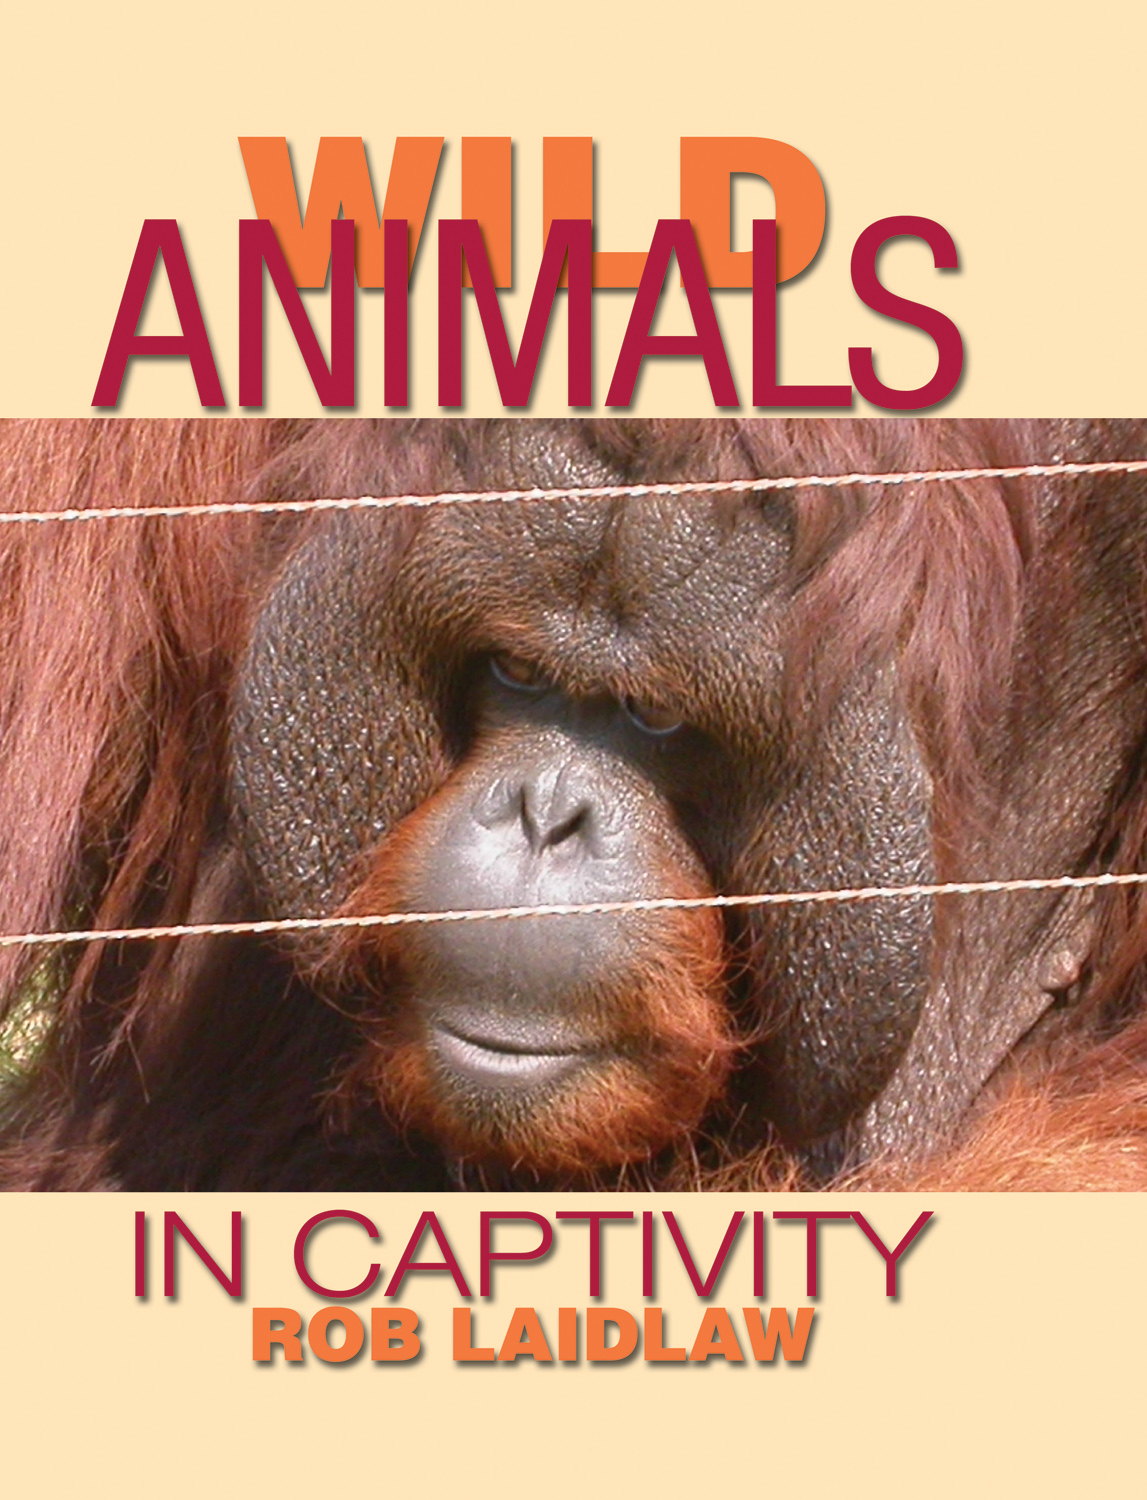 animals captivity Animals in captivity become bored and don't live in a natural manner, according to ecologist beckoff diseases from wild animals the centers for disease control and prevention warns that wild animals kept in captivity can spread diseases to humans reptiles can spread salmonella, a bacterial disease.